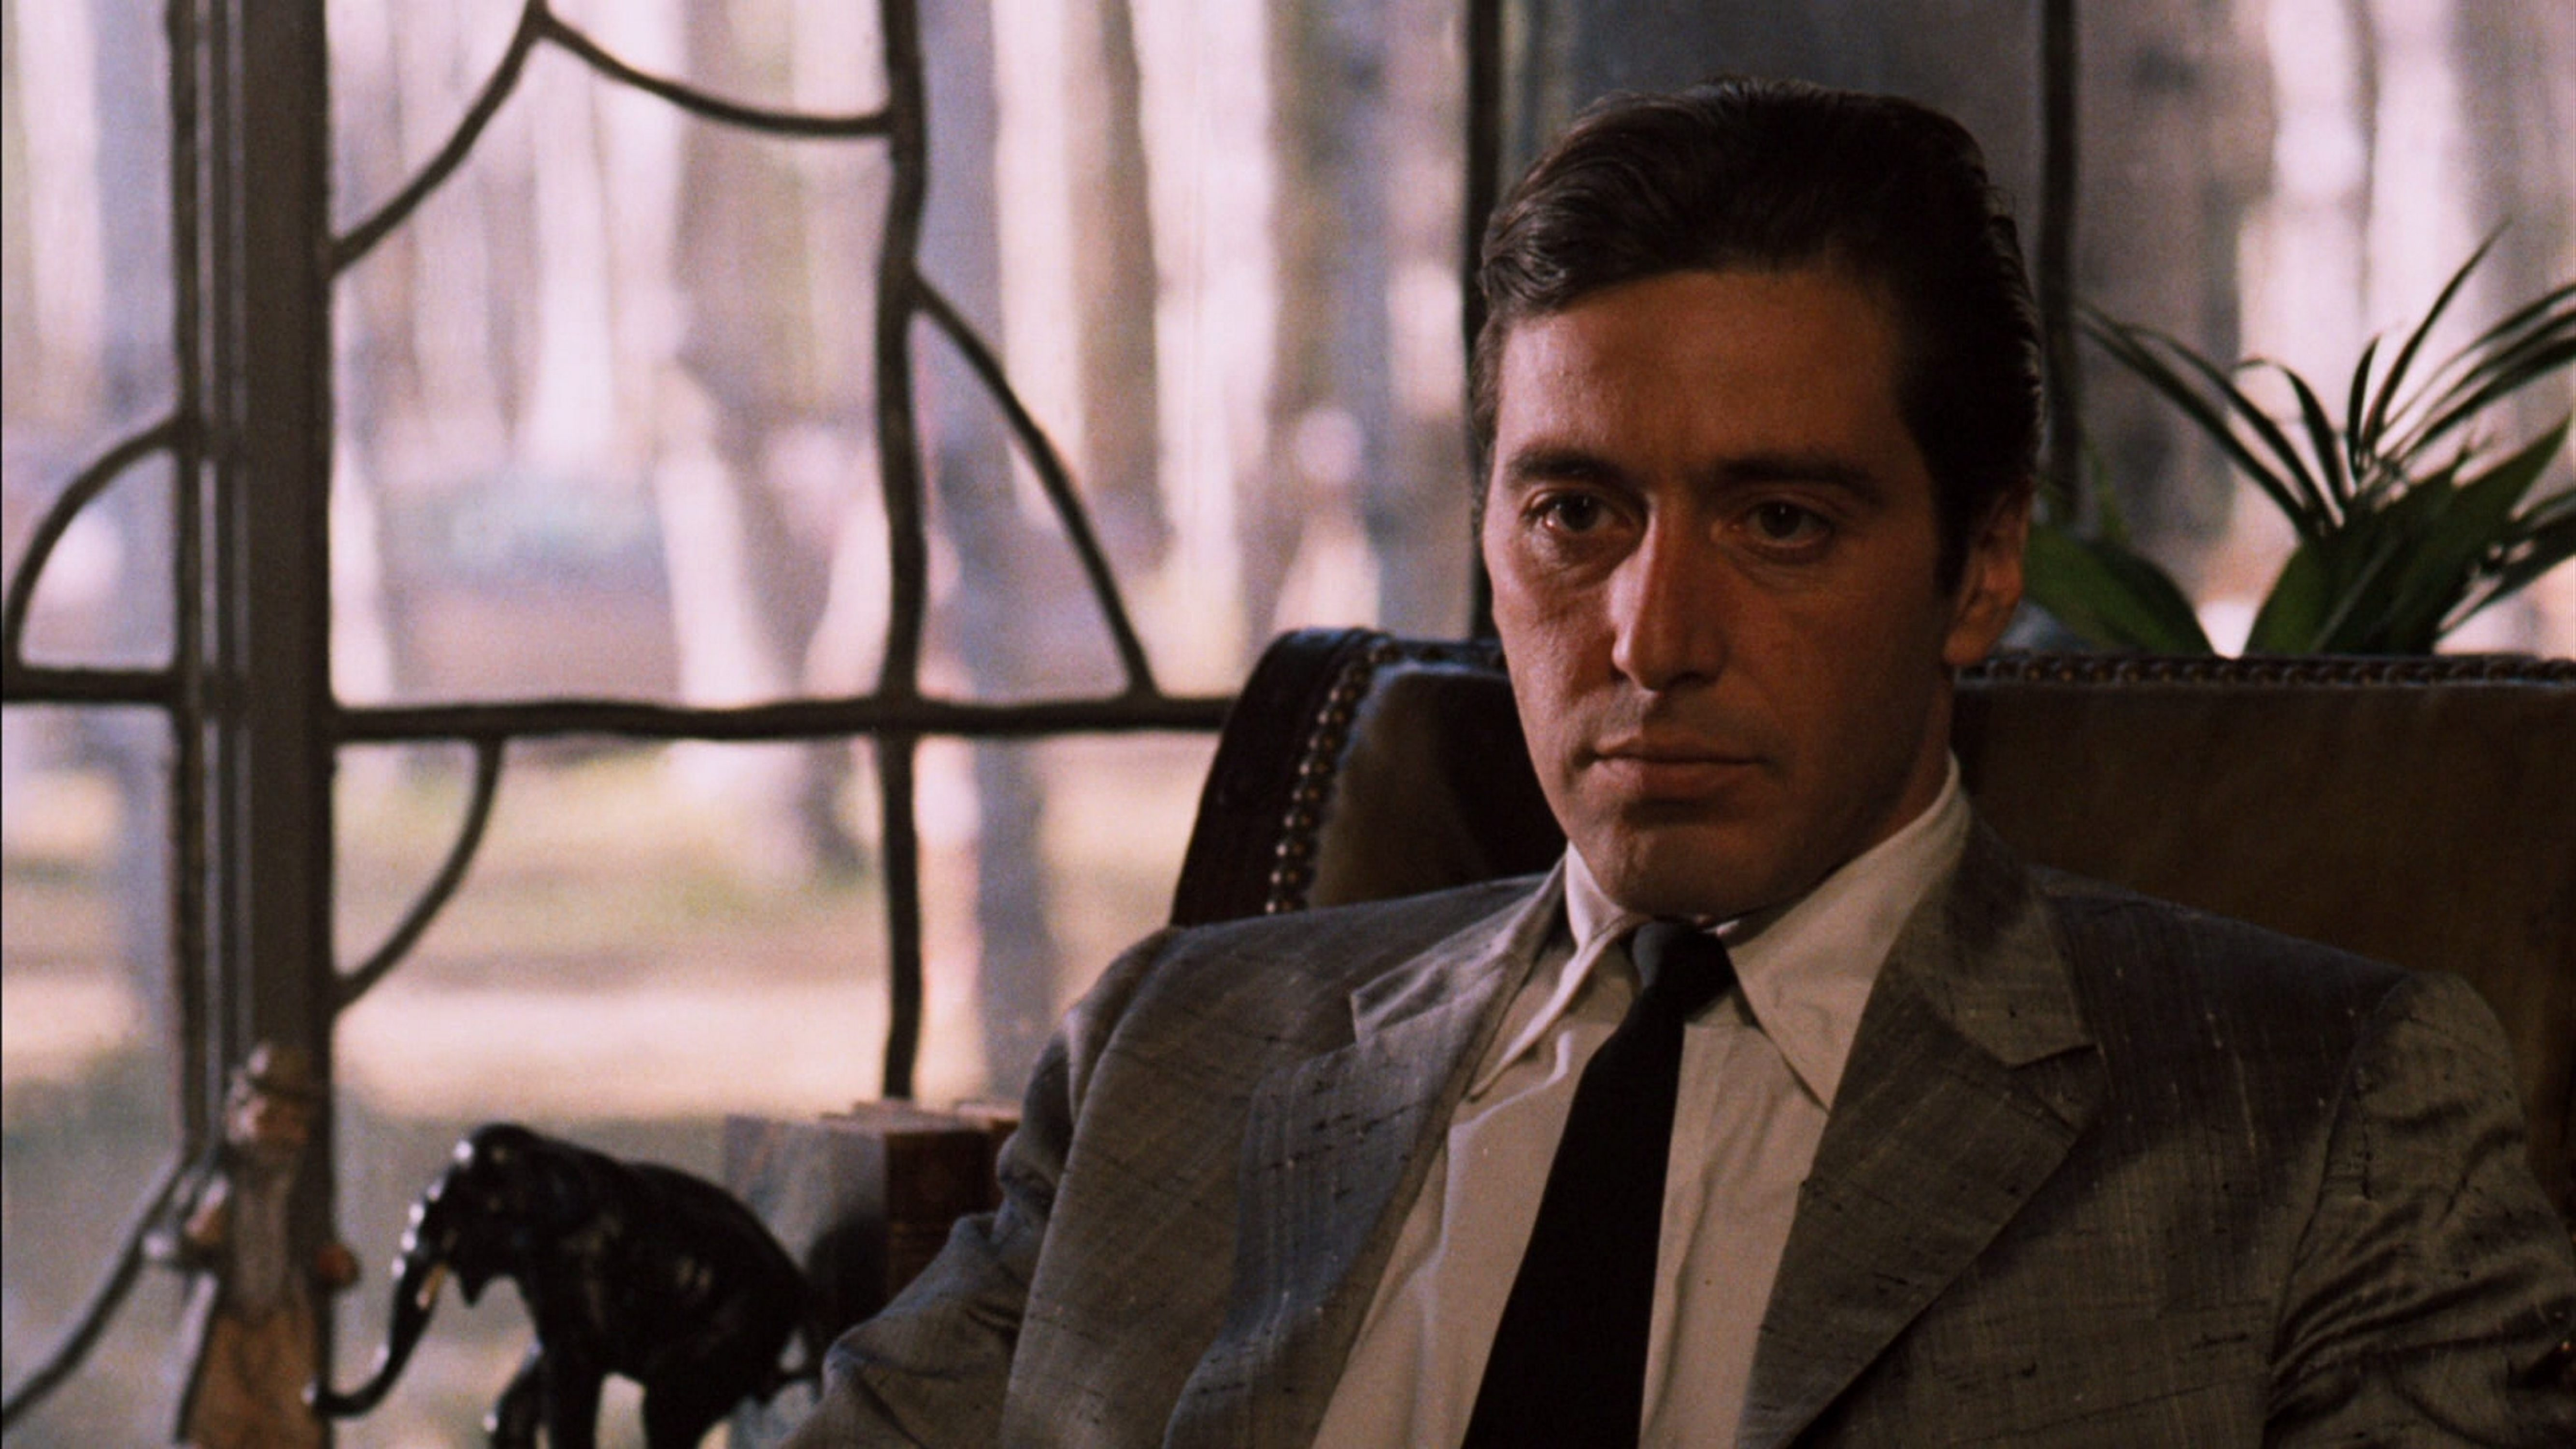 """The Regal Quaker Crossing has special screenings of """"The Godfather"""" and """"The Godfather Part II,"""" starring Al Pacino."""